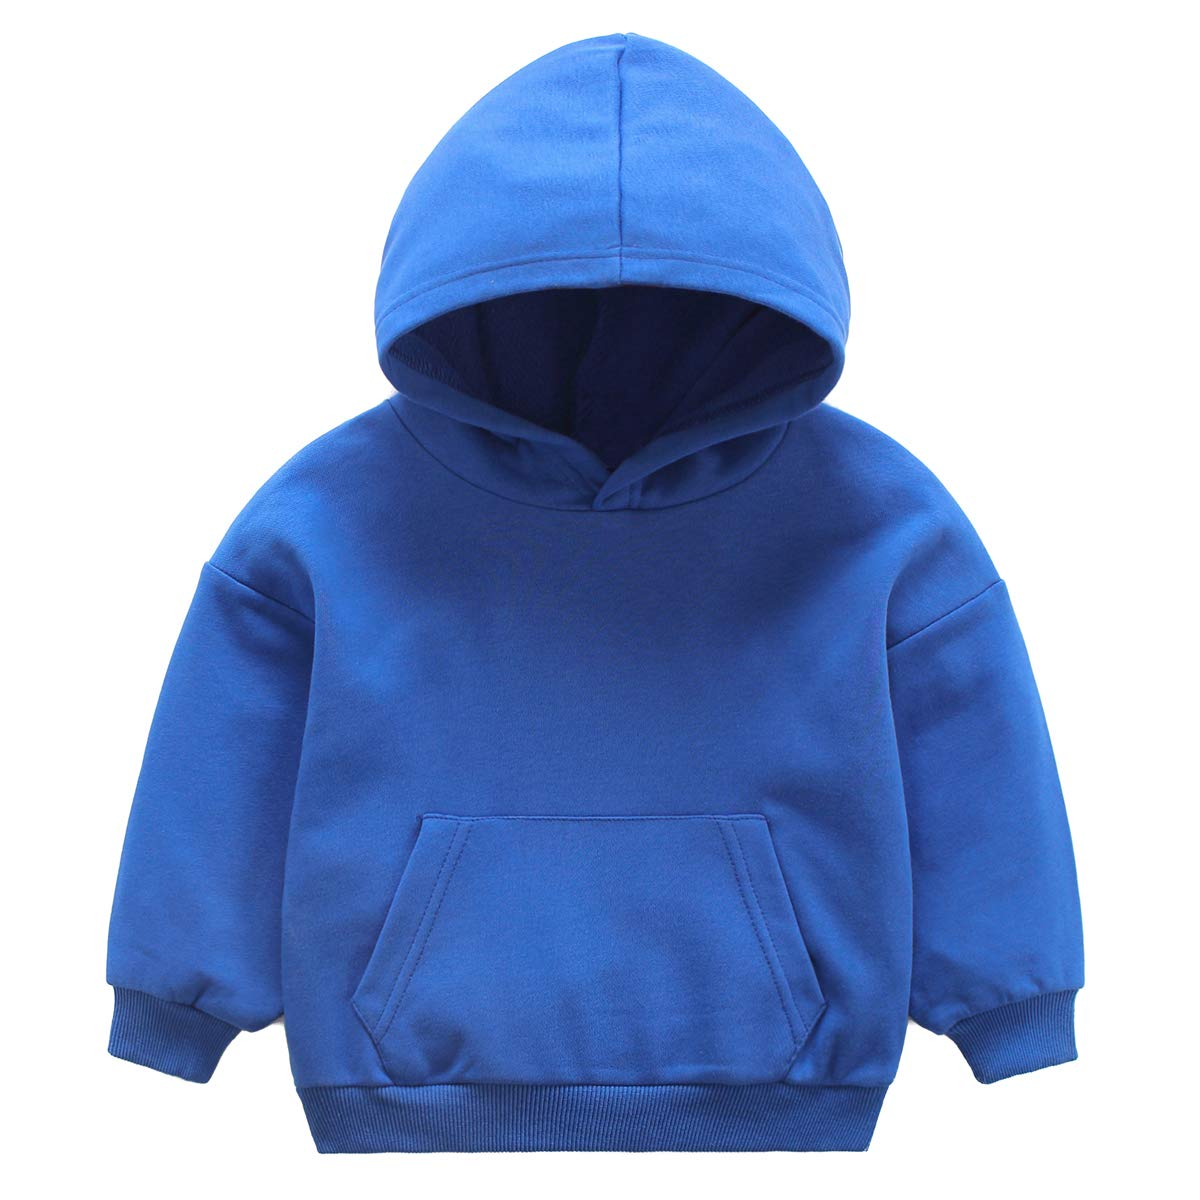 NANVII Baby Girl Boy Hoddie,Baby Pullover Cotton Hoodie with Pocket,Solid Hoodie for Infant Blue by NANVII